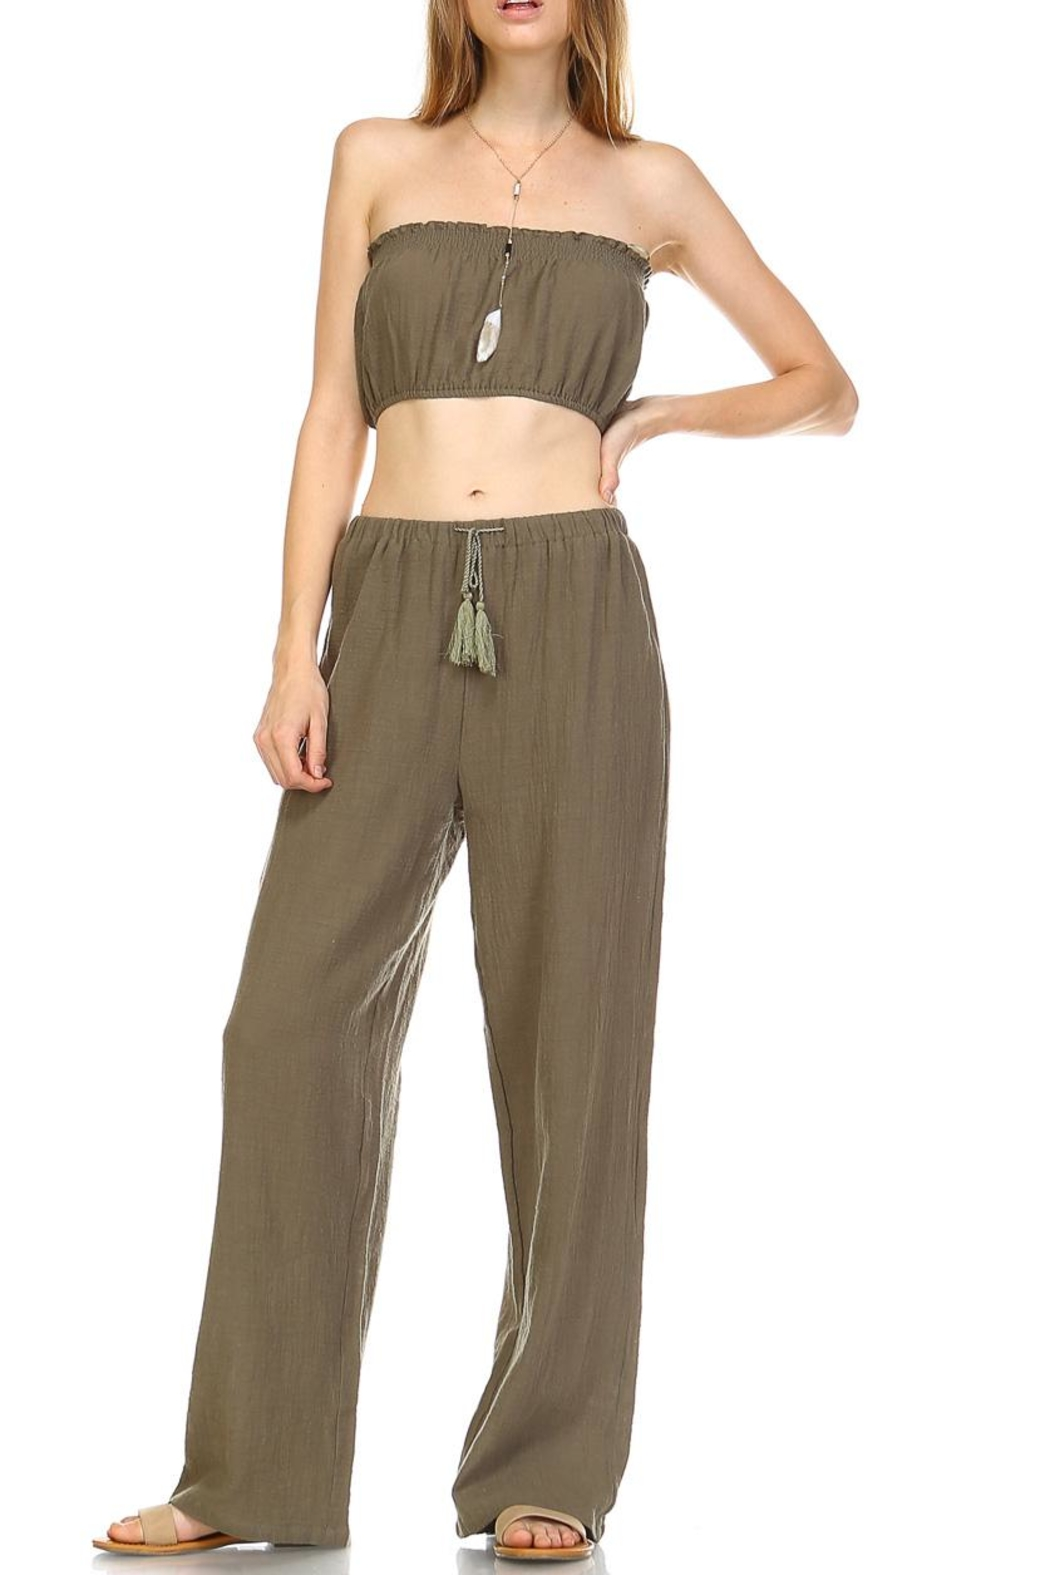 hers and mine Crop Pant Set - Front Full Image